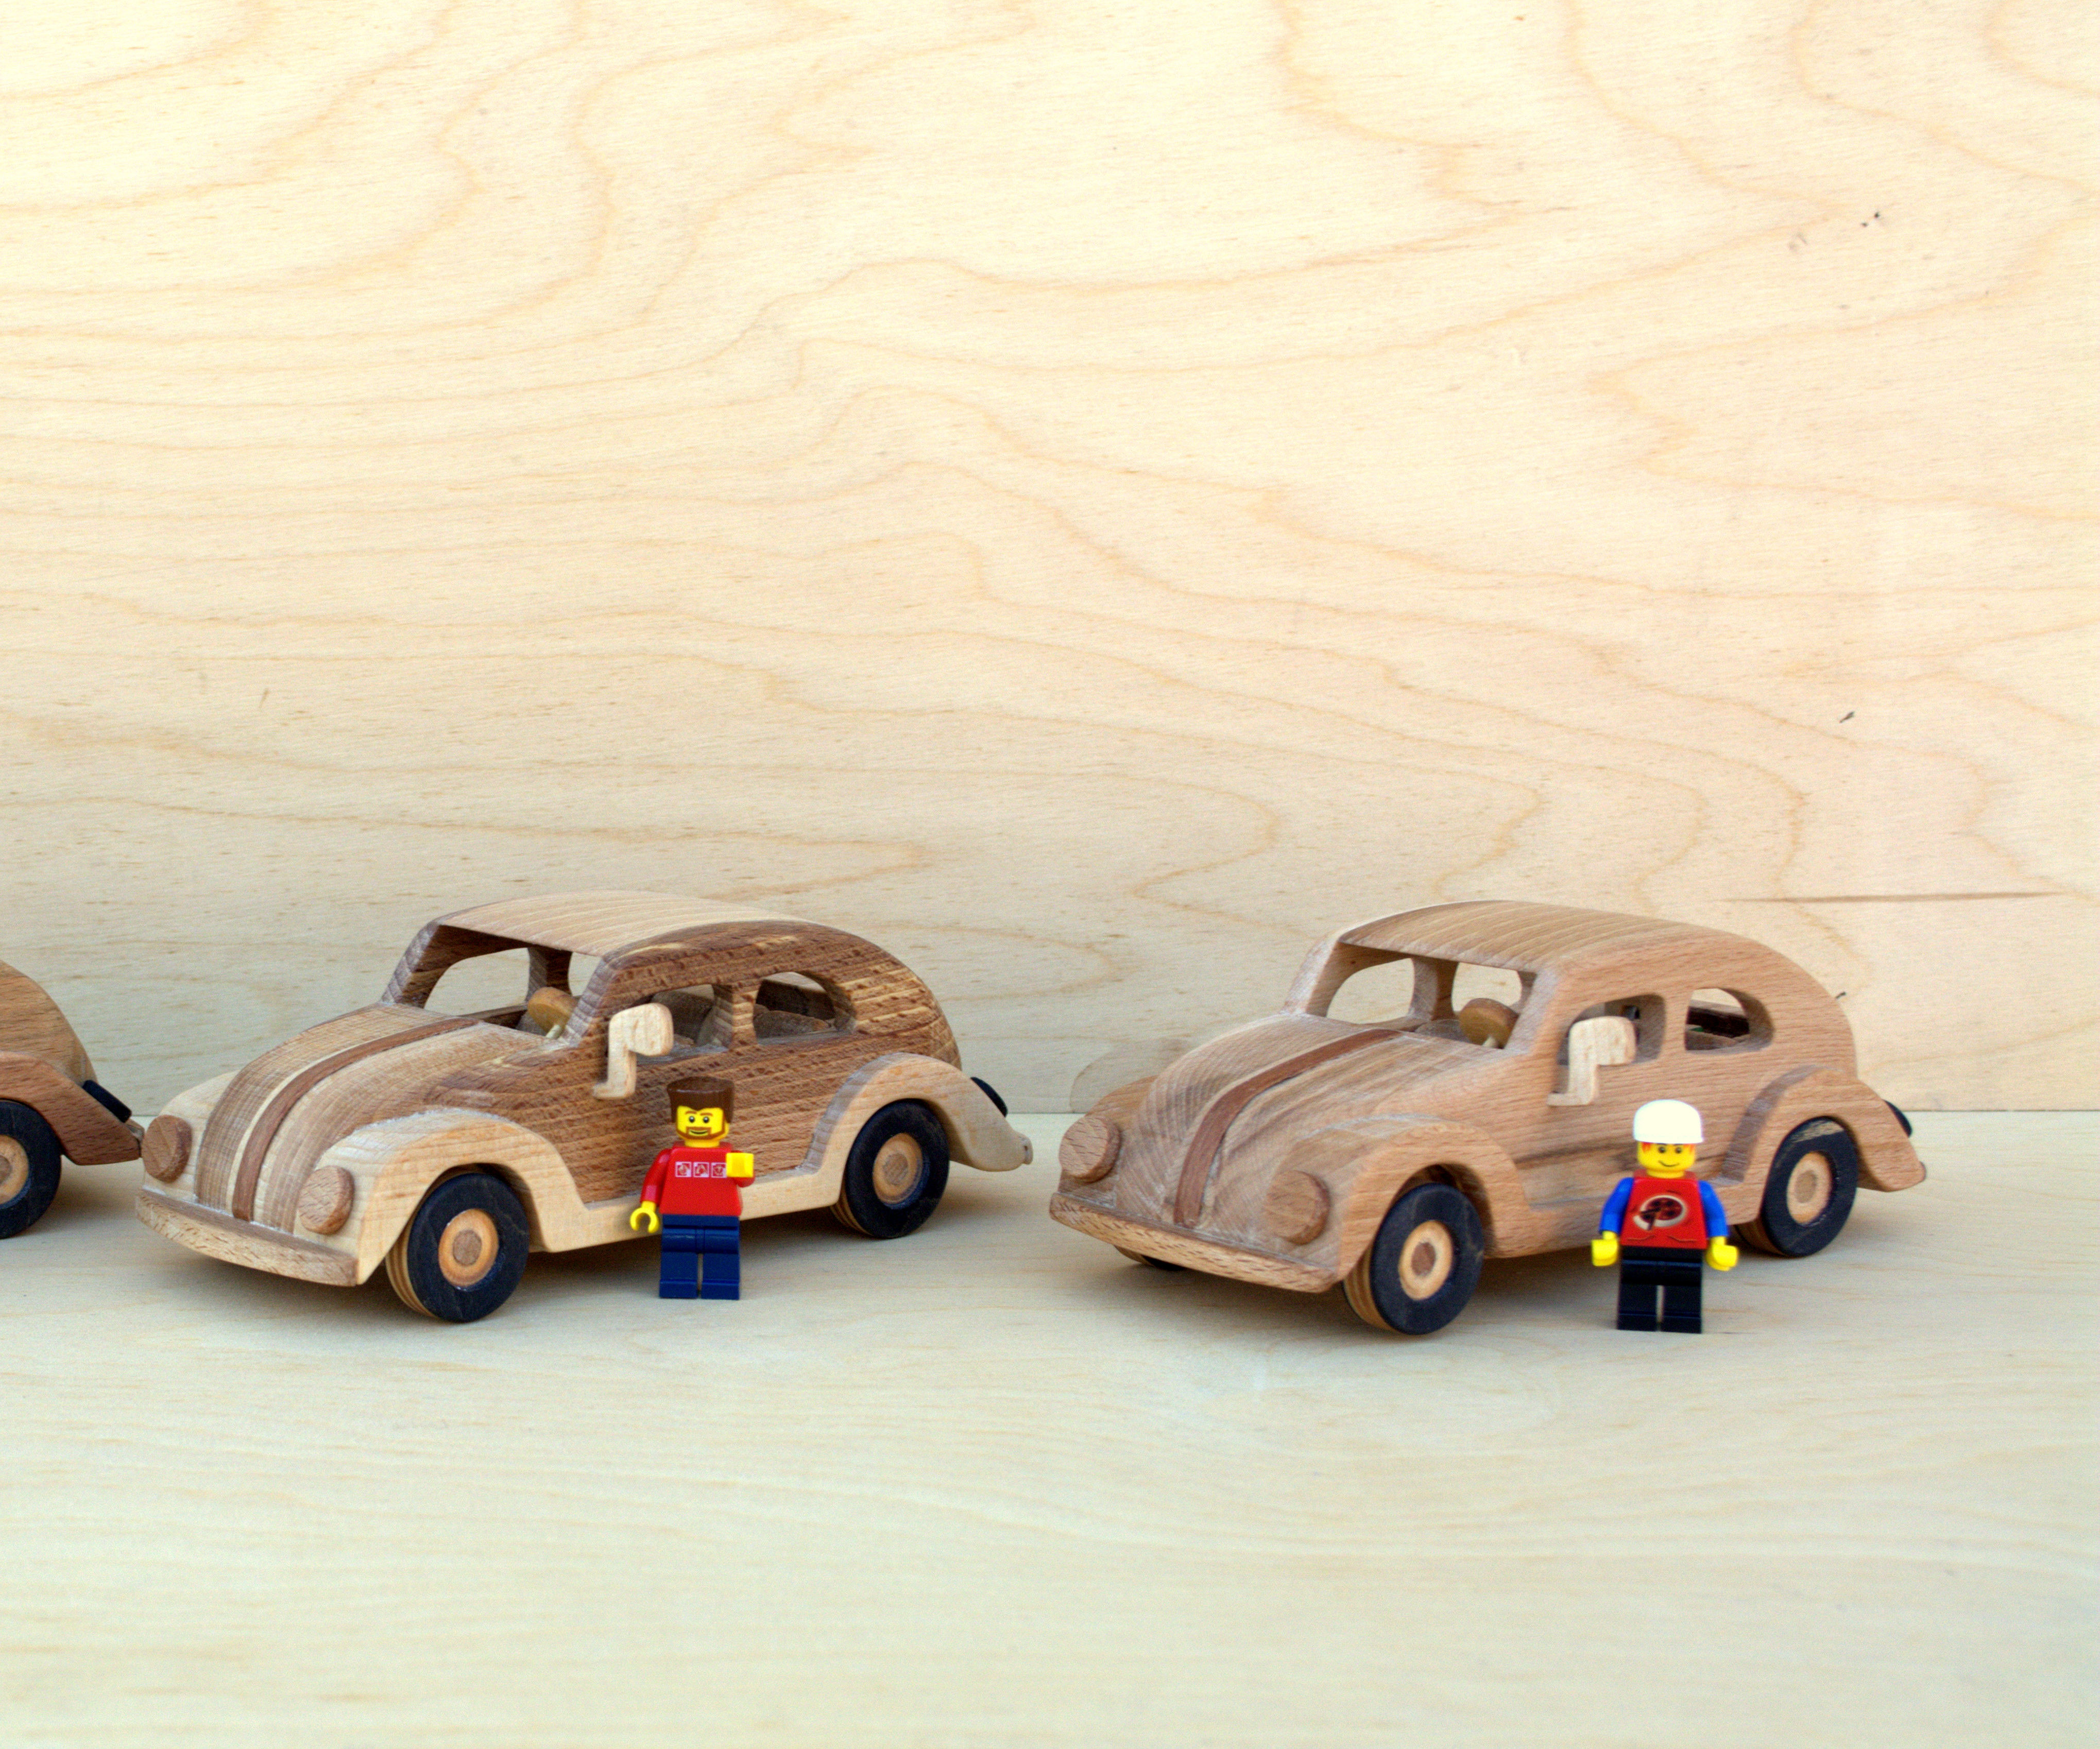 How to Make a Wooden Toy Volkswagen Beetle/Bug